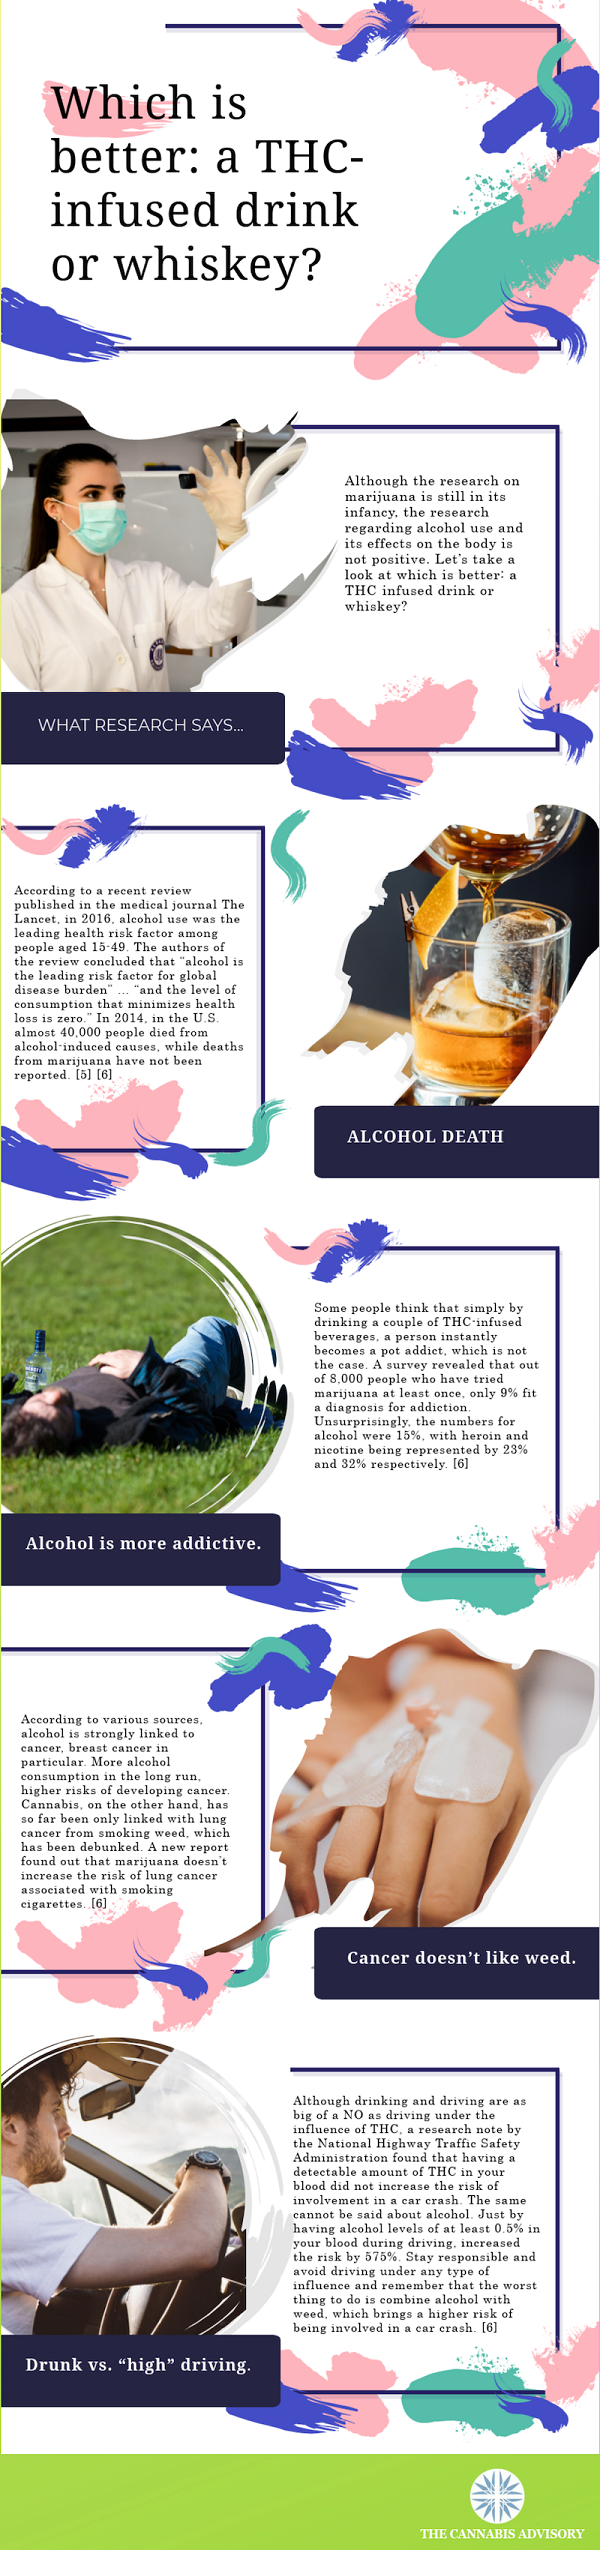 Why Weed is Better for You Than Alcohol